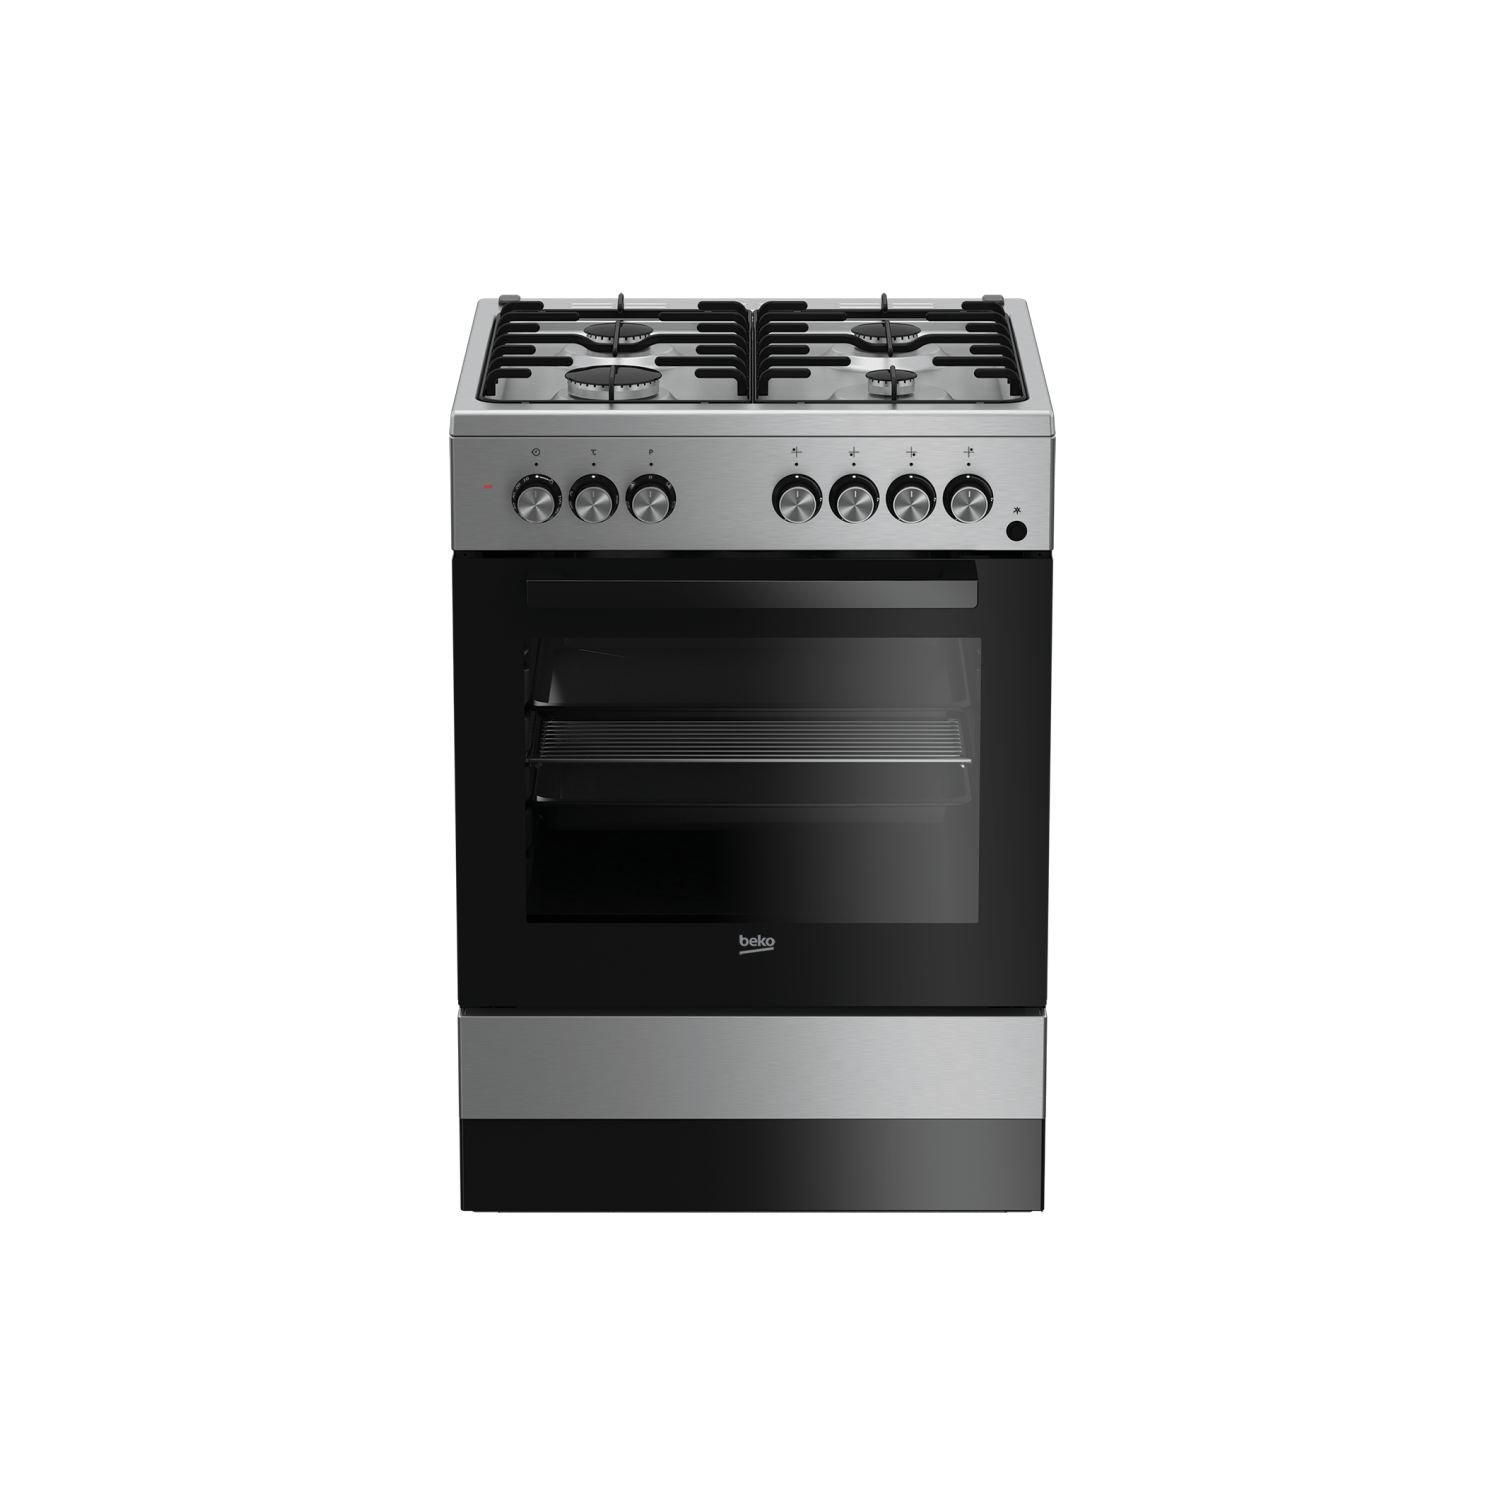 Beko CSE 62110 DX Independiente Gas hob A Negro, Acero ...